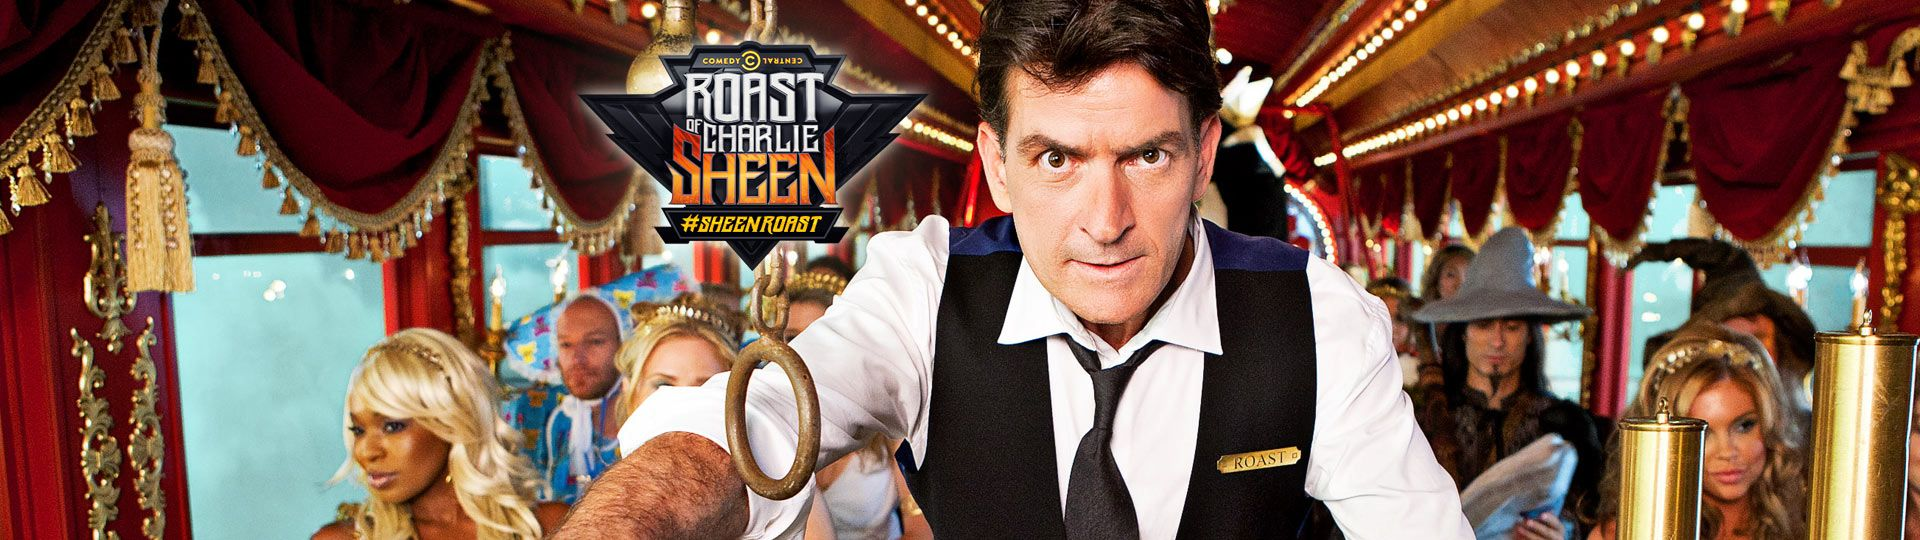 the roast of charlie sheen german download